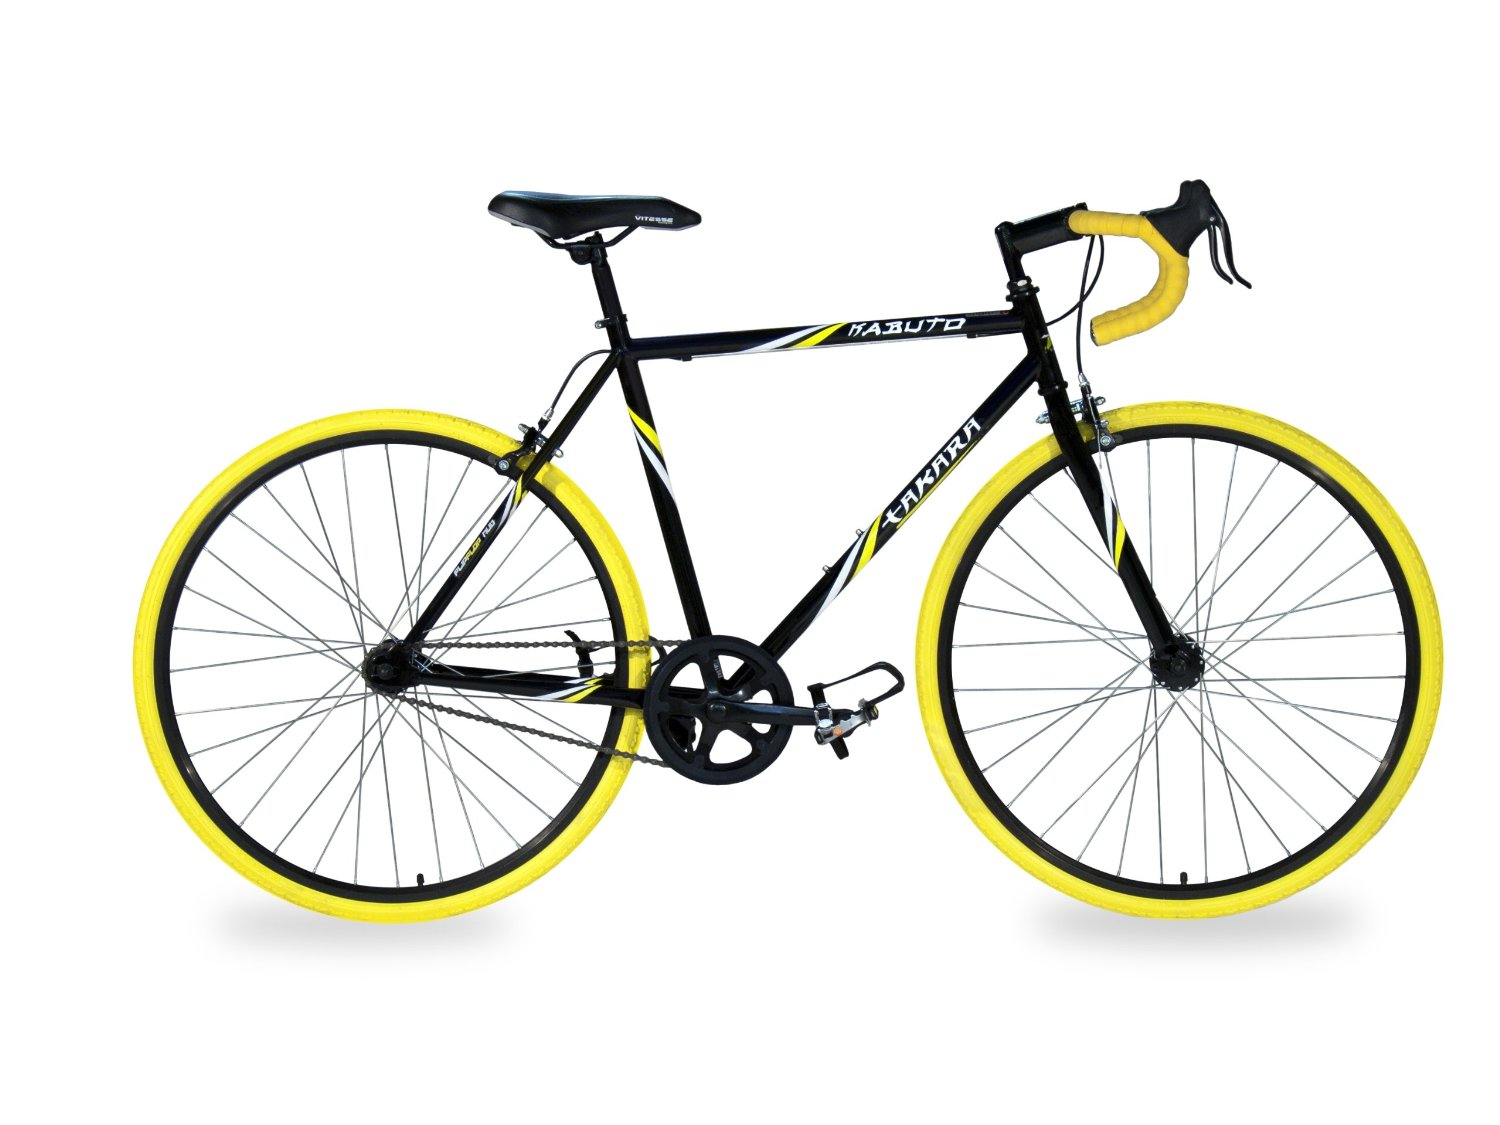 Takara Kabuto Single Speed Road Bike Medium